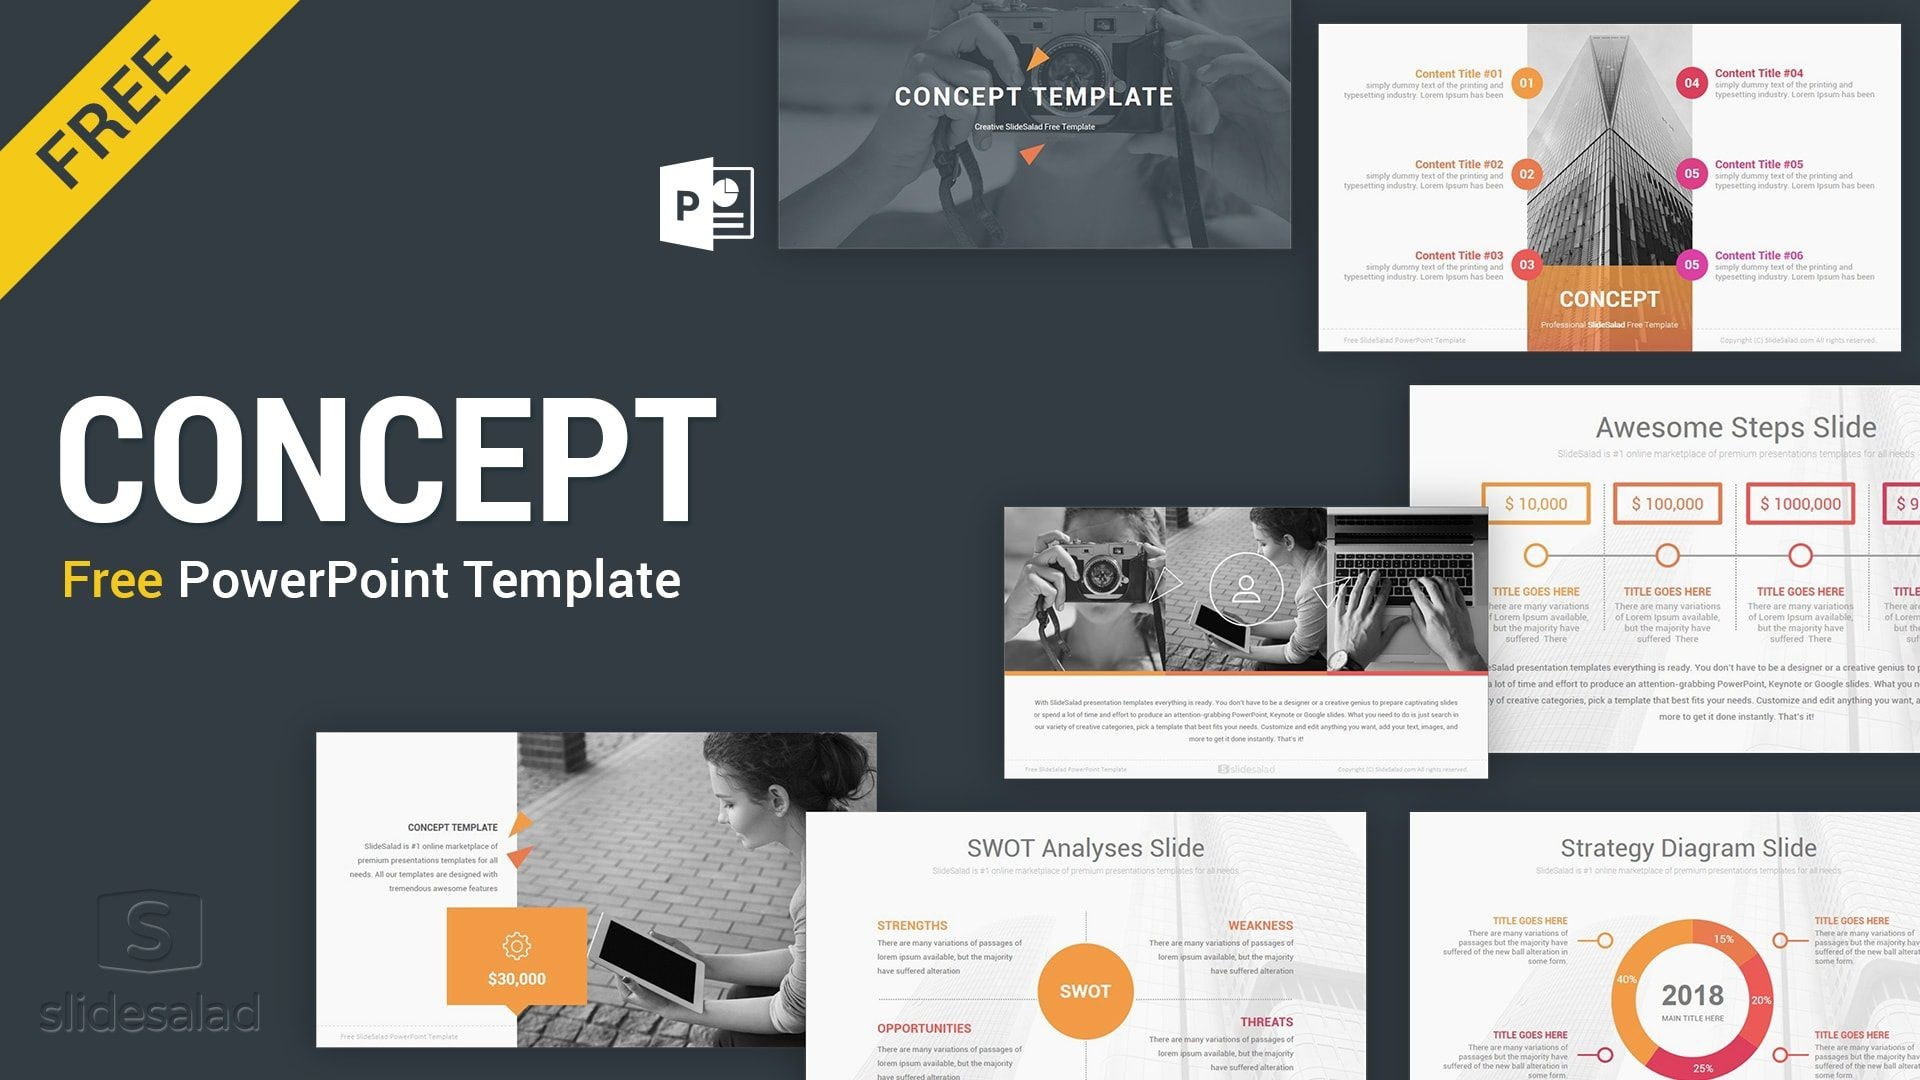 004 Breathtaking Ppt Template Free Download Idea  Powerpoint 2020 Microsoft History 20181920